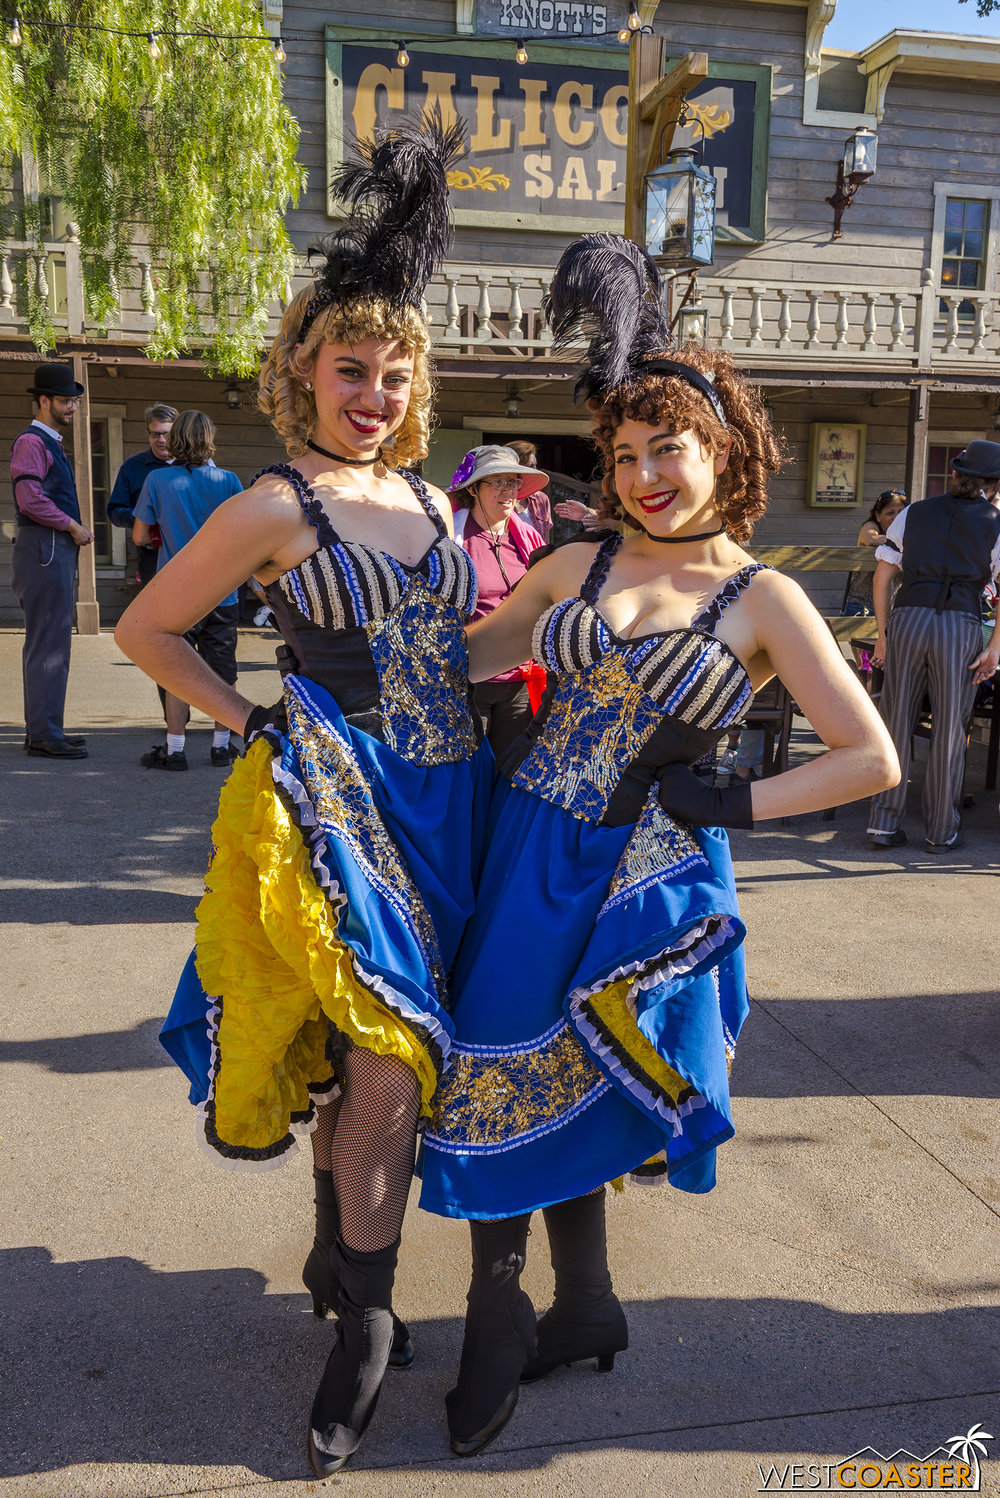 The famous Saloon can-can girls, Dixie and Trixie, are quite popular.